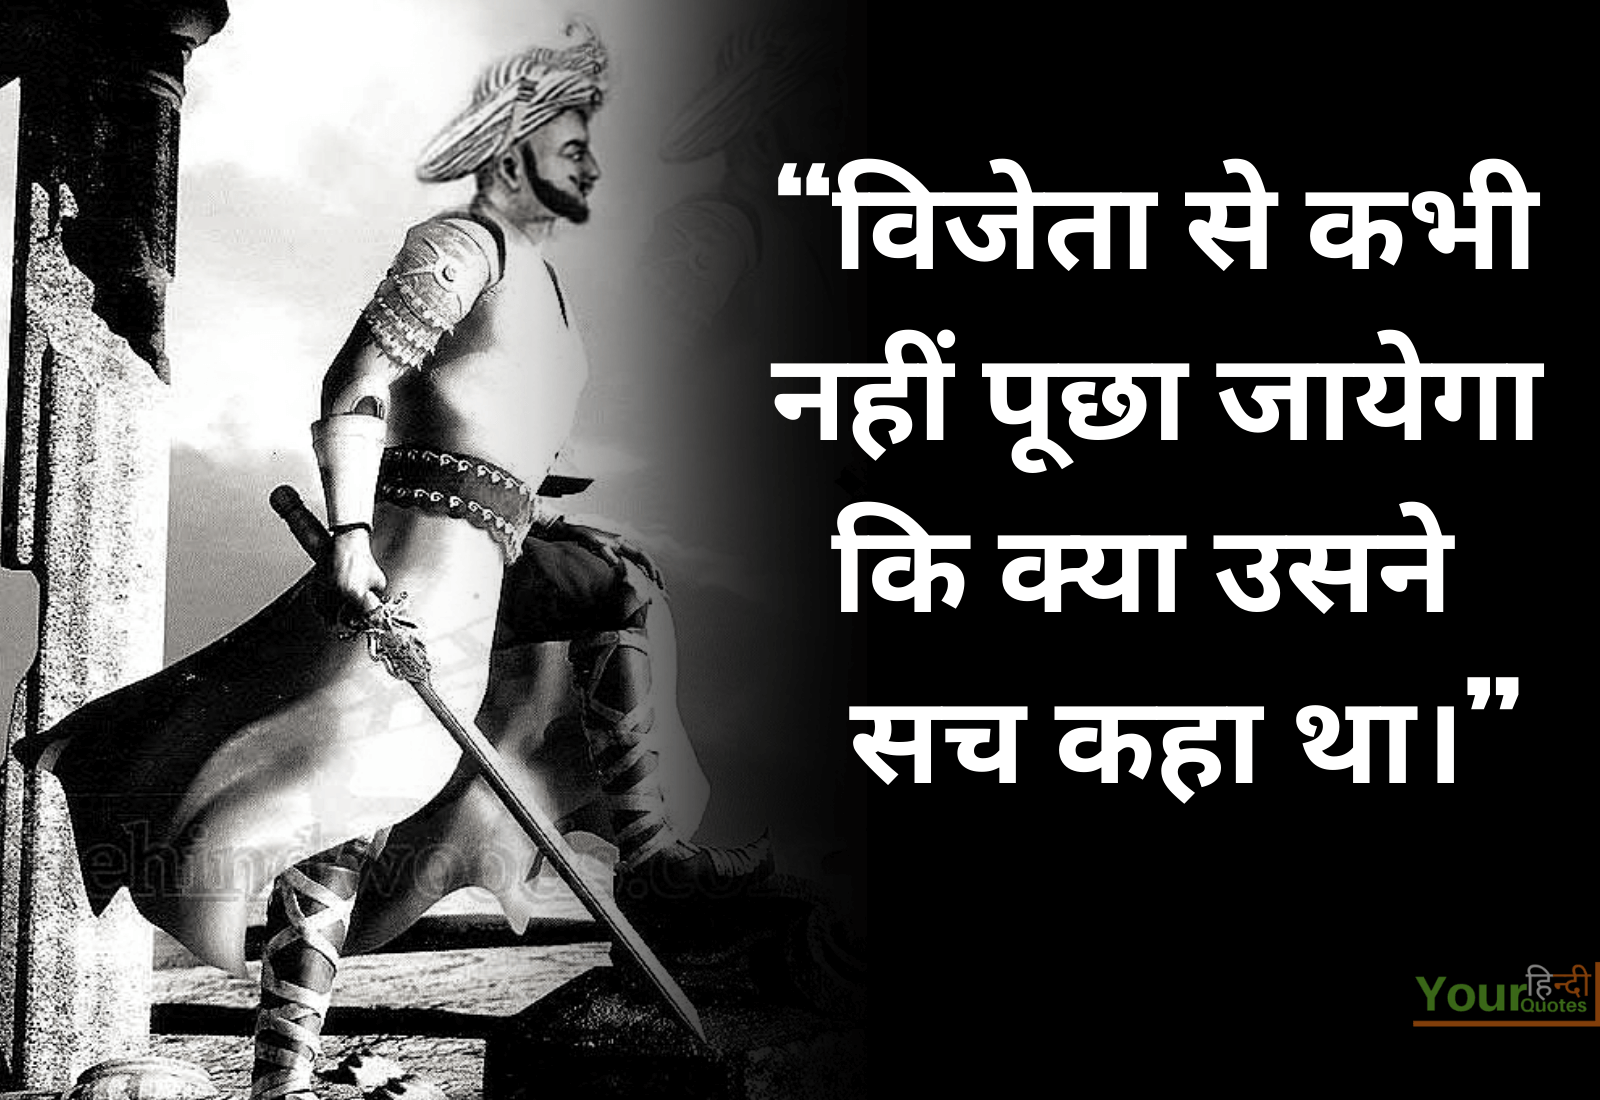 Best Thought in hindi Images